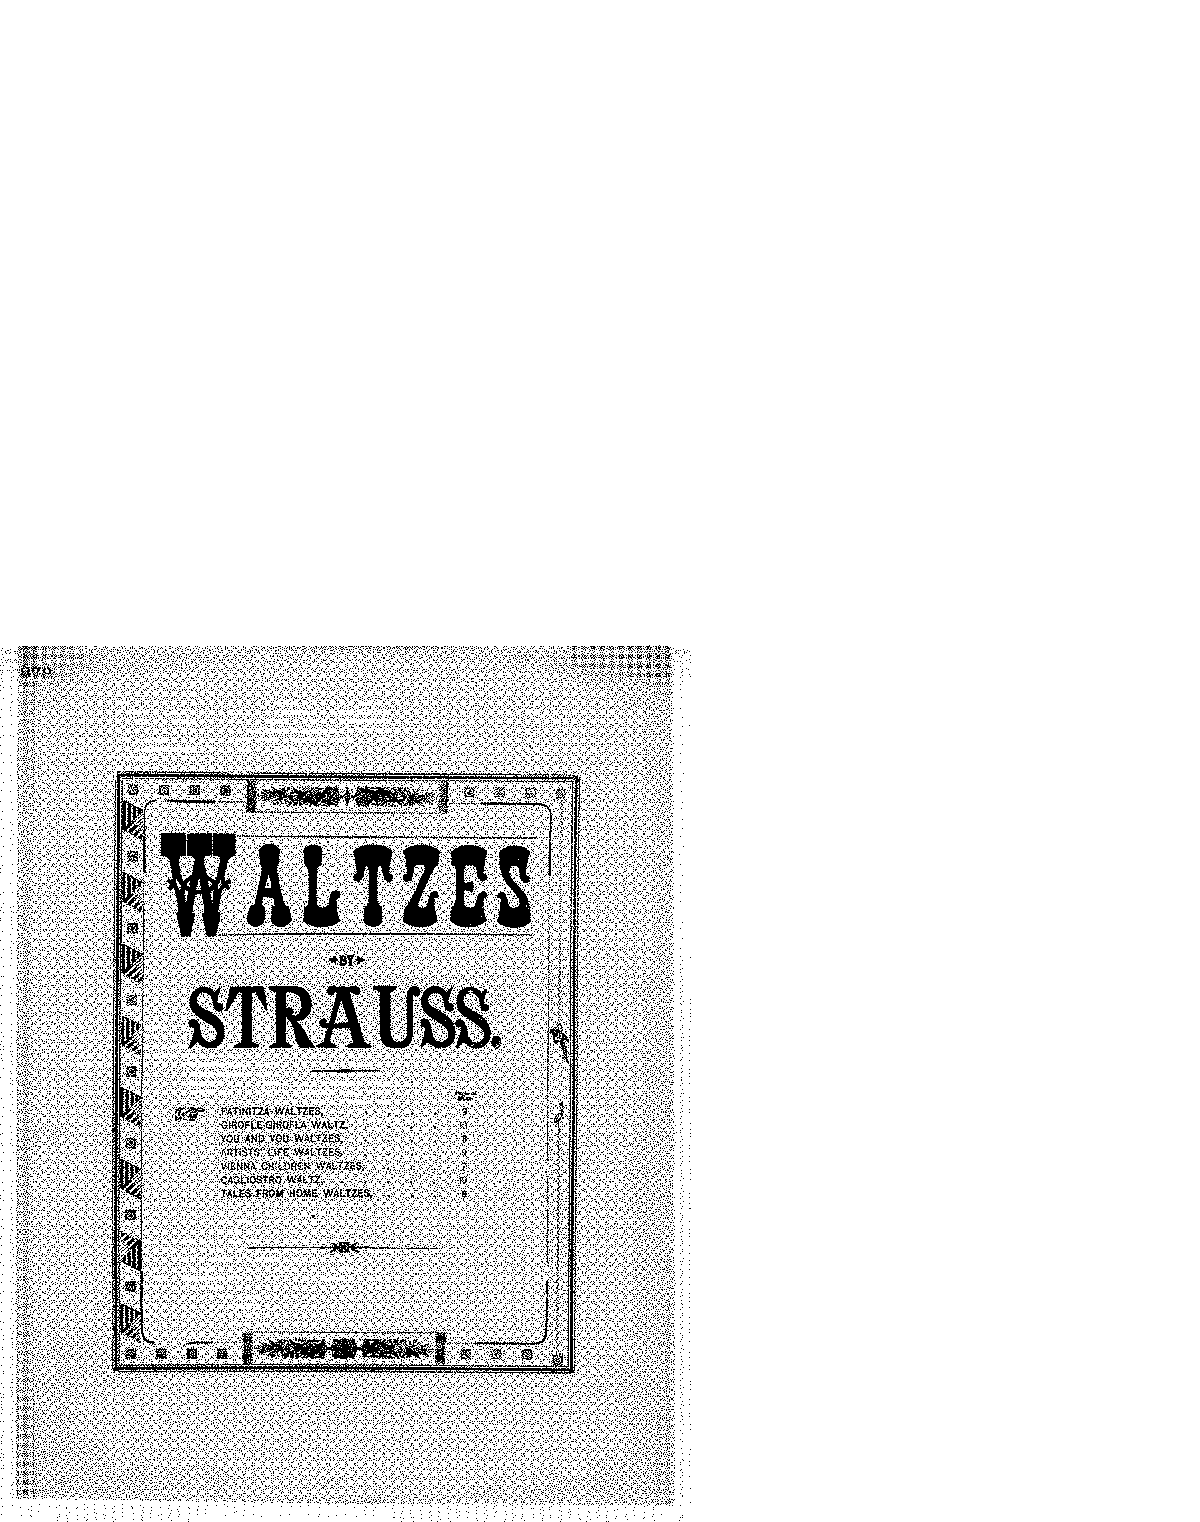 PMLP334261-Fatinitza waltzes (on melodies from the opera by F. v. Suppe1.pdf